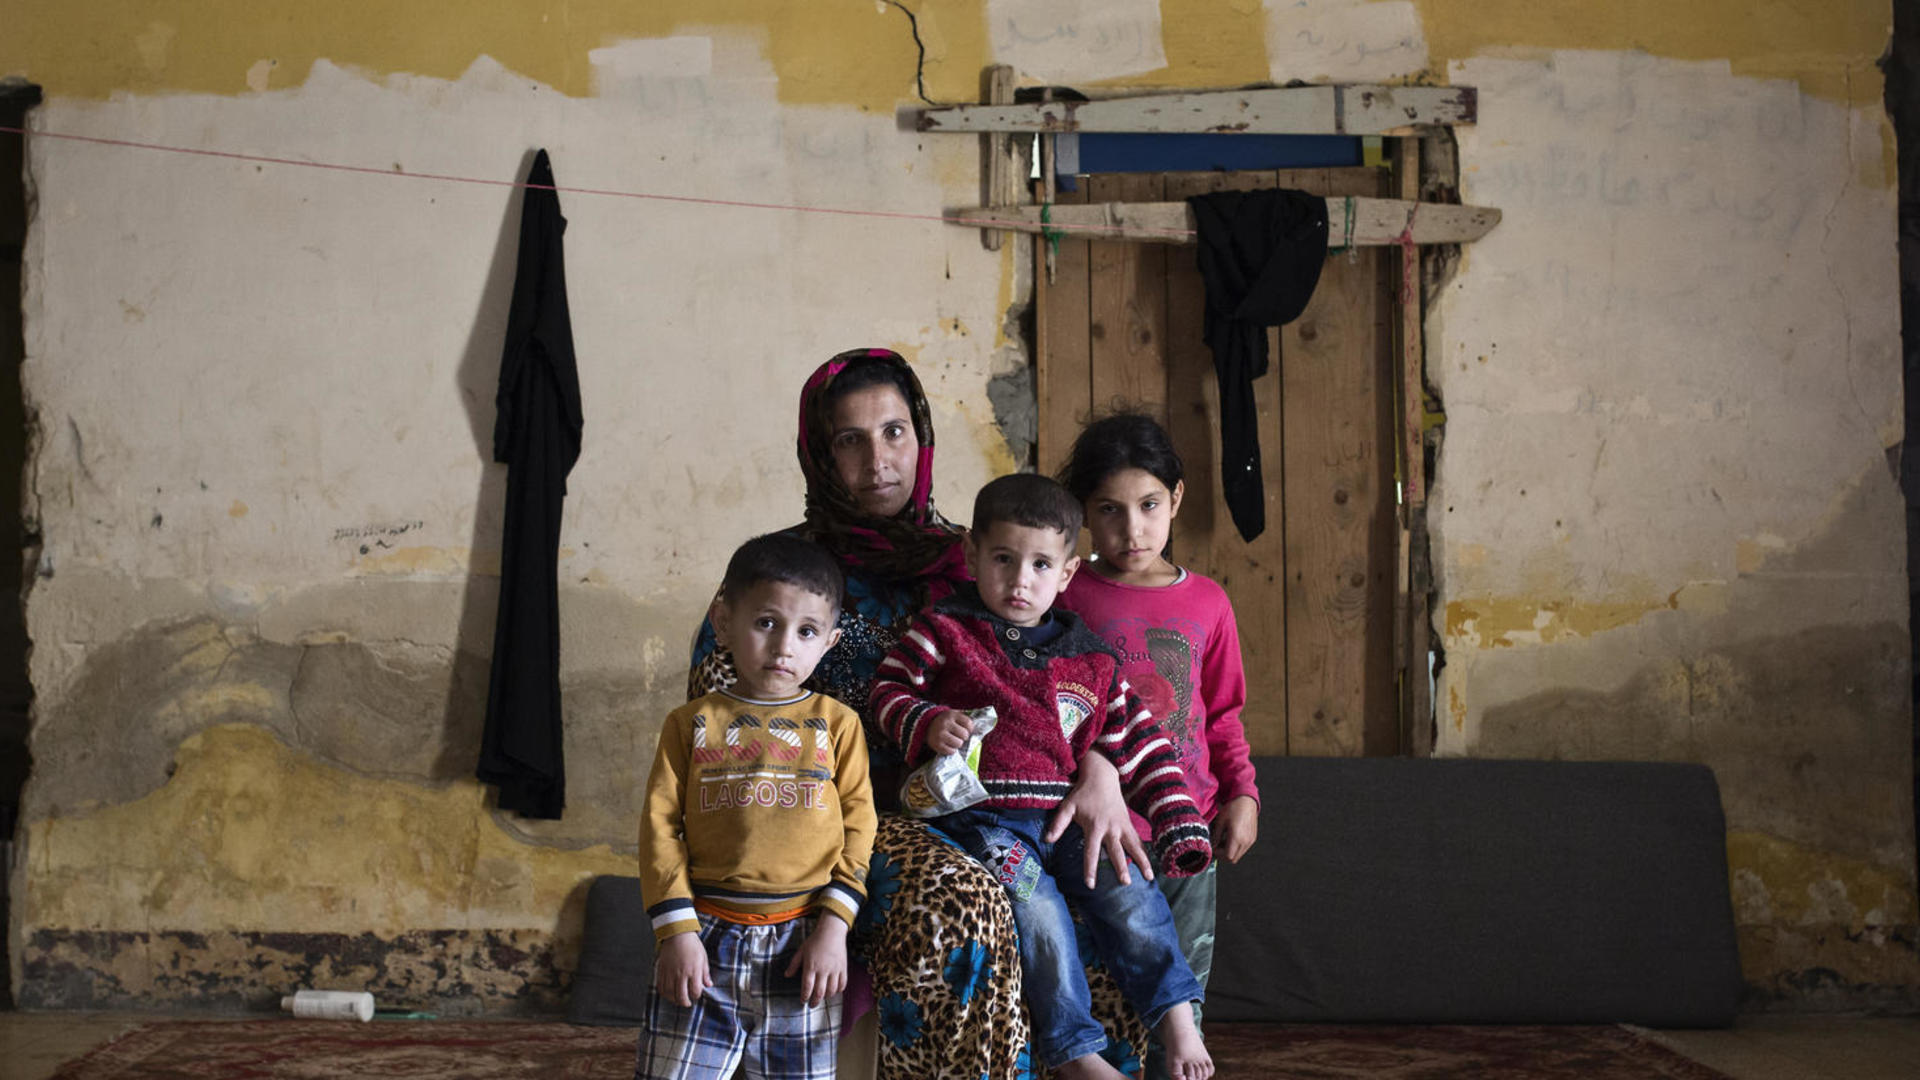 international committee irc a syrian mother and three children sit amid rubble in an abandoned building where they live